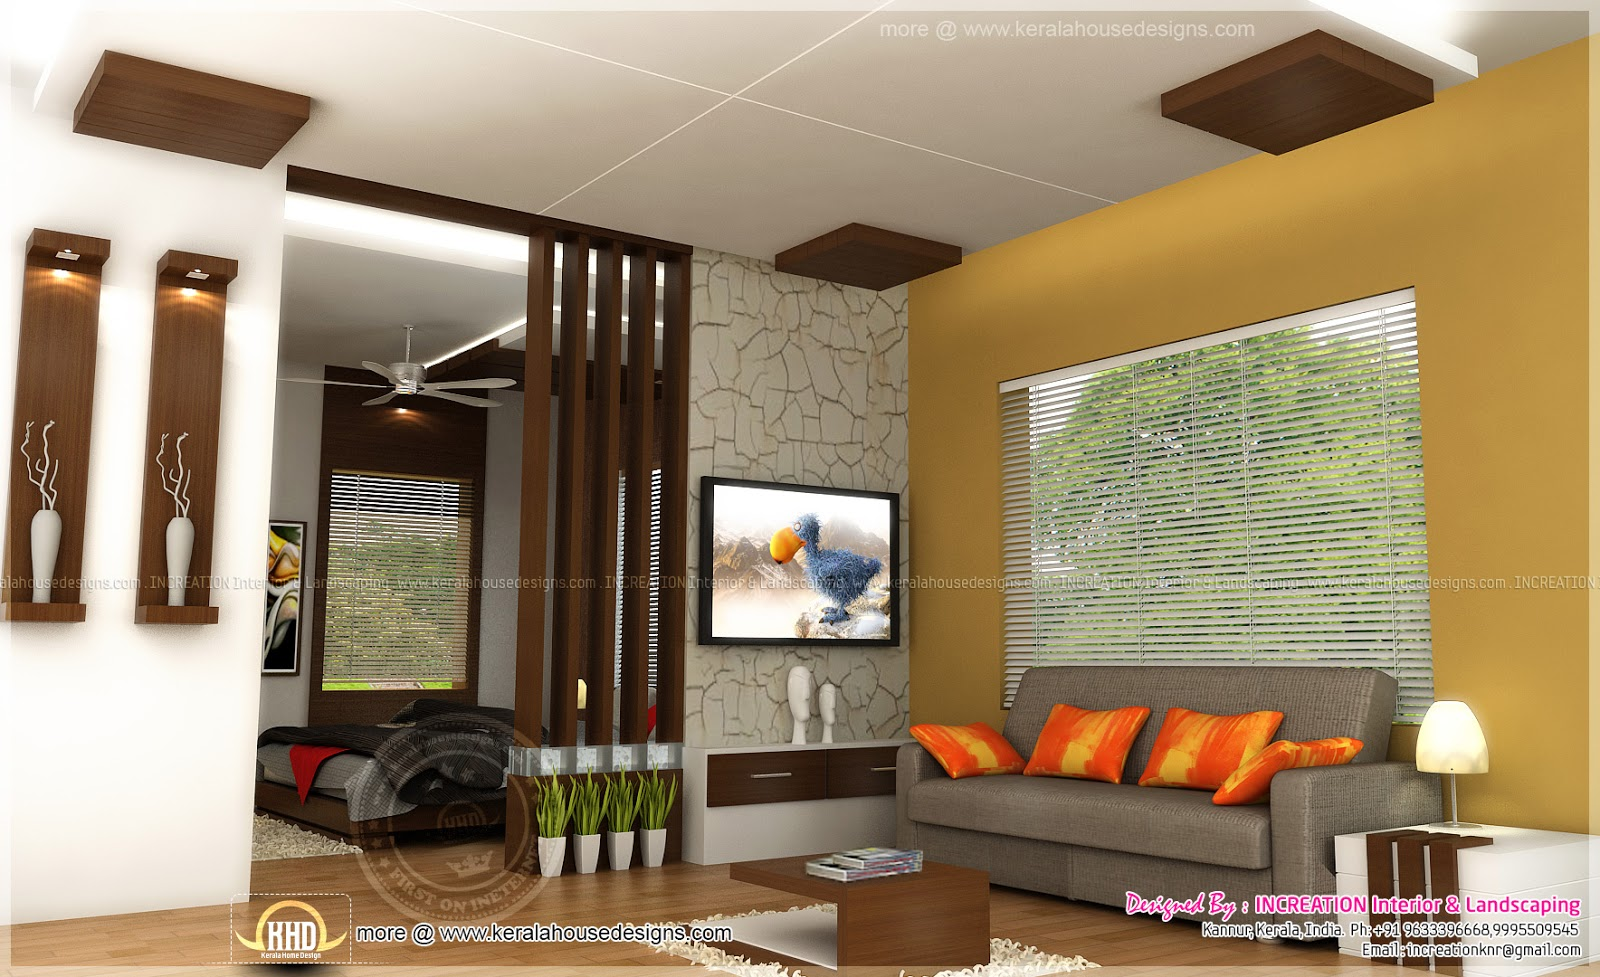 Interior designs from kannur kerala kerala home design for Inside designers homes